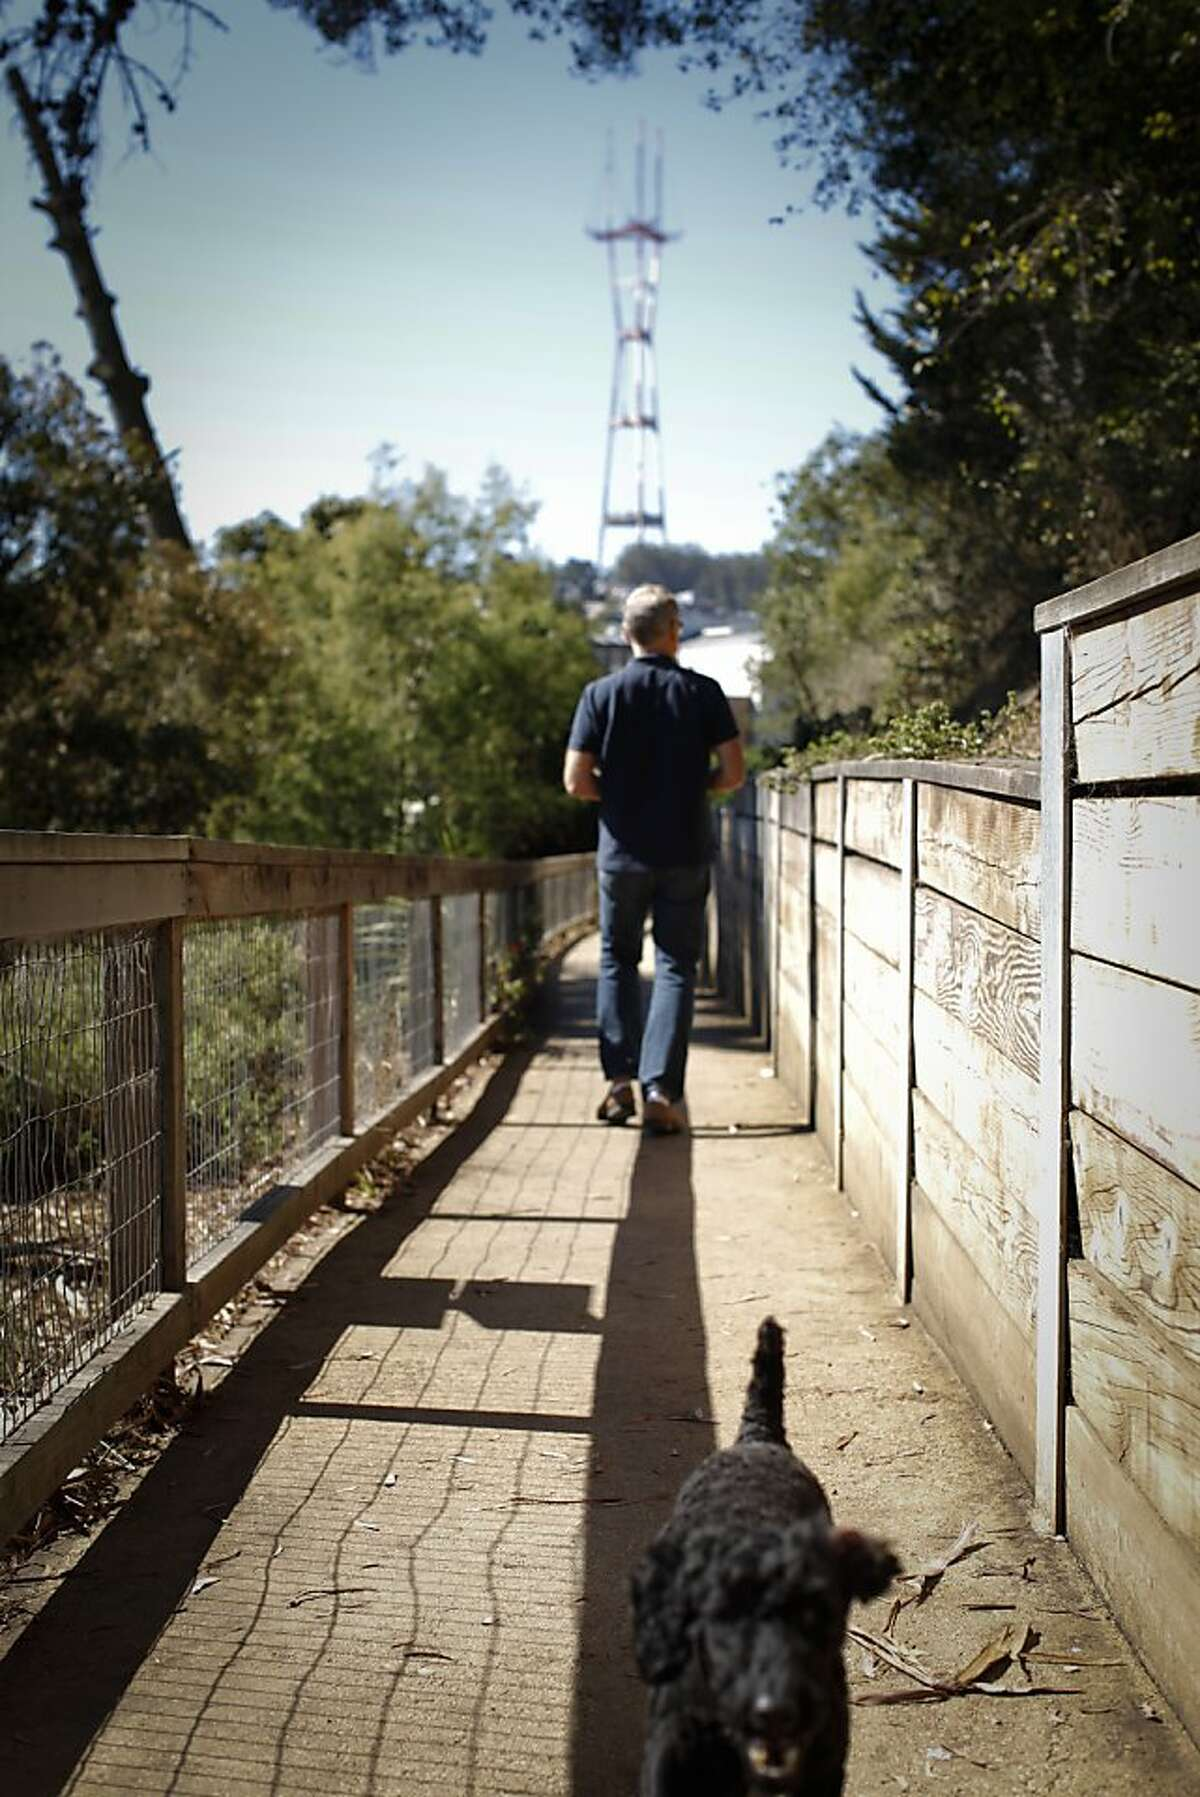 A man walks his dog on a path with a view of Sutro Tower in Buena Vista Park on Thursday, Sep. 26, 2013 in San Francisco, Calif.